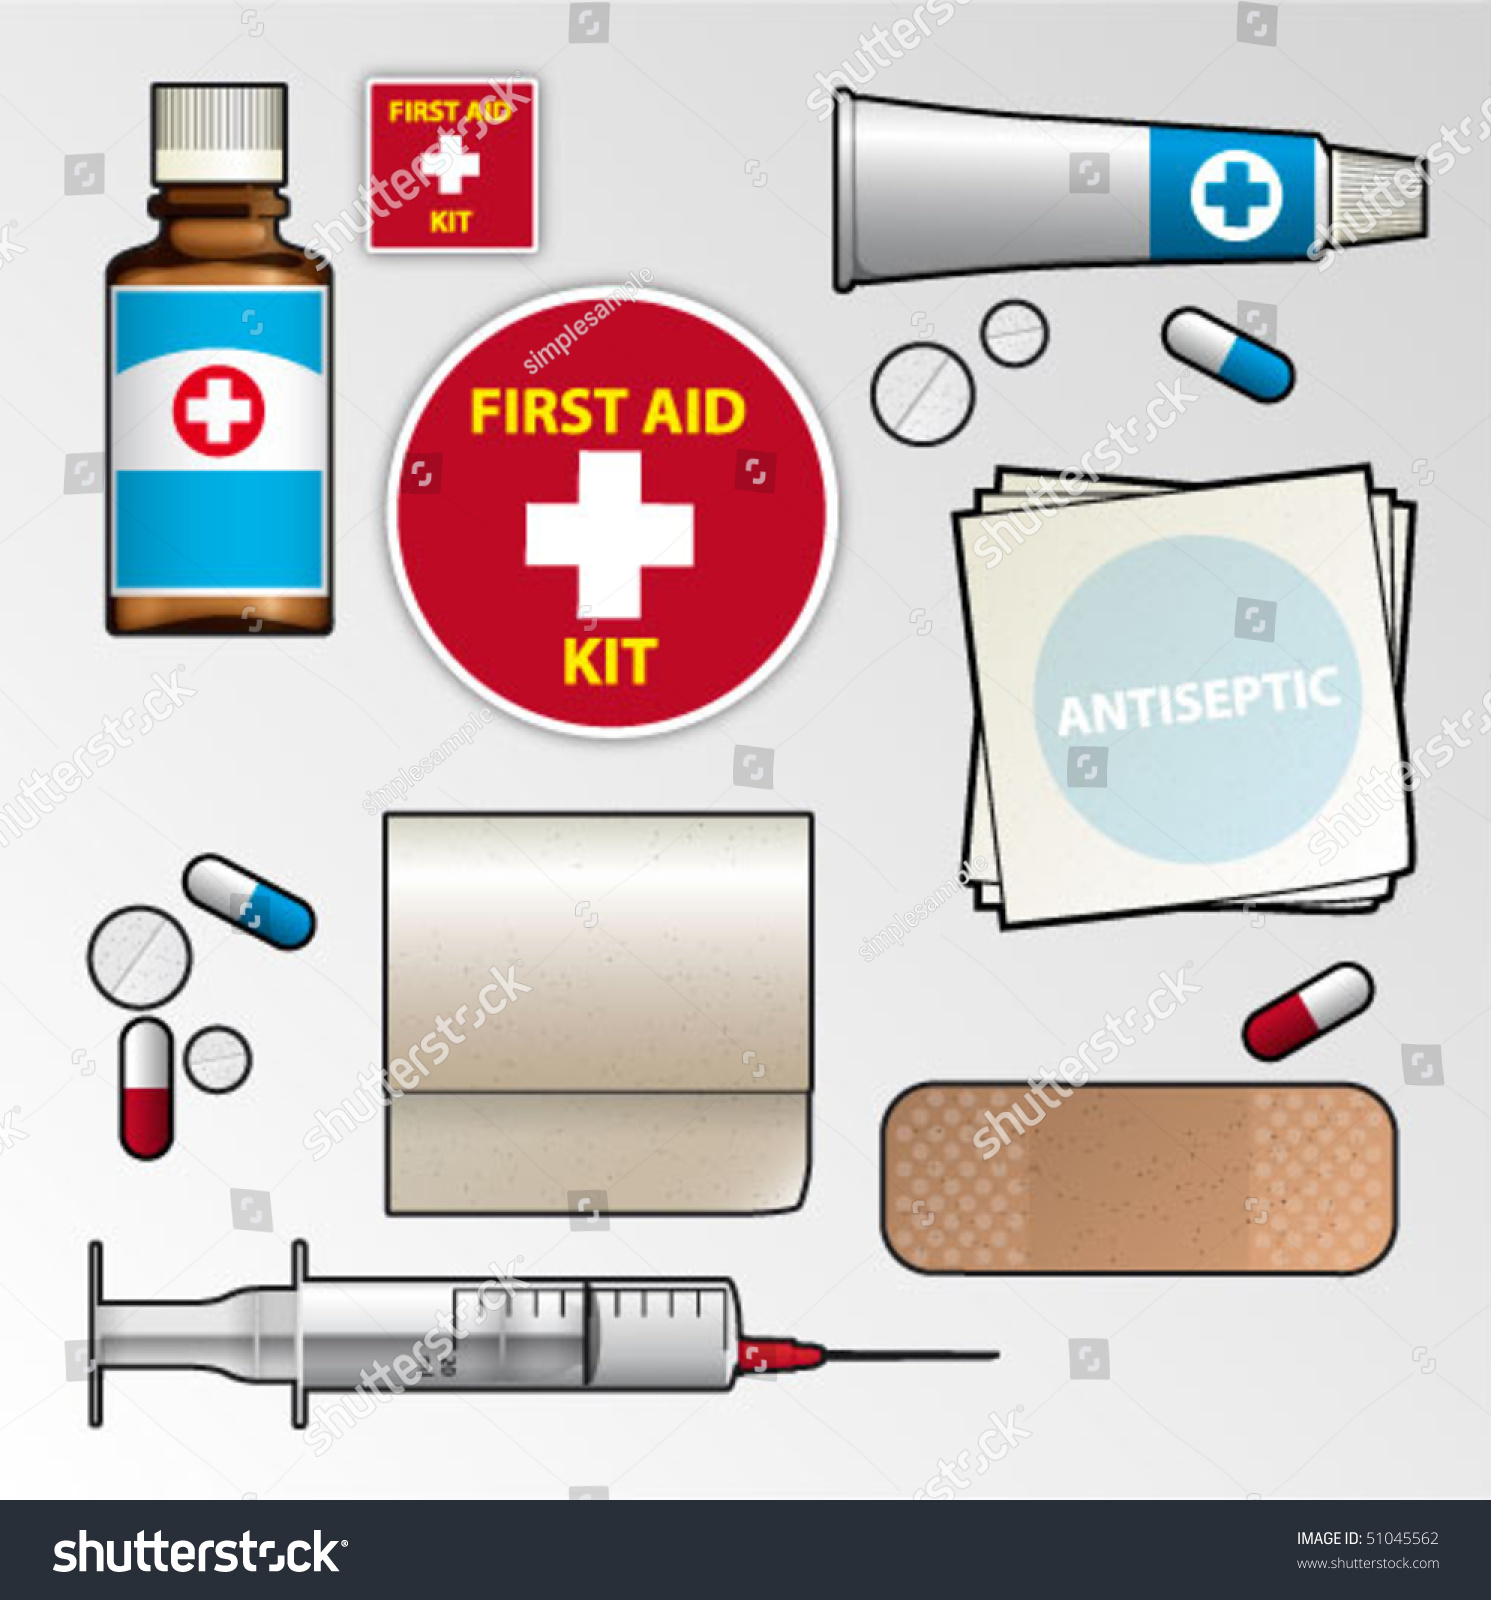 First Aid Kit Contents For Kids Image Mag : stock vector first aid kit 51045562 from imagemag.ru size 1491 x 1600 jpeg 414kB